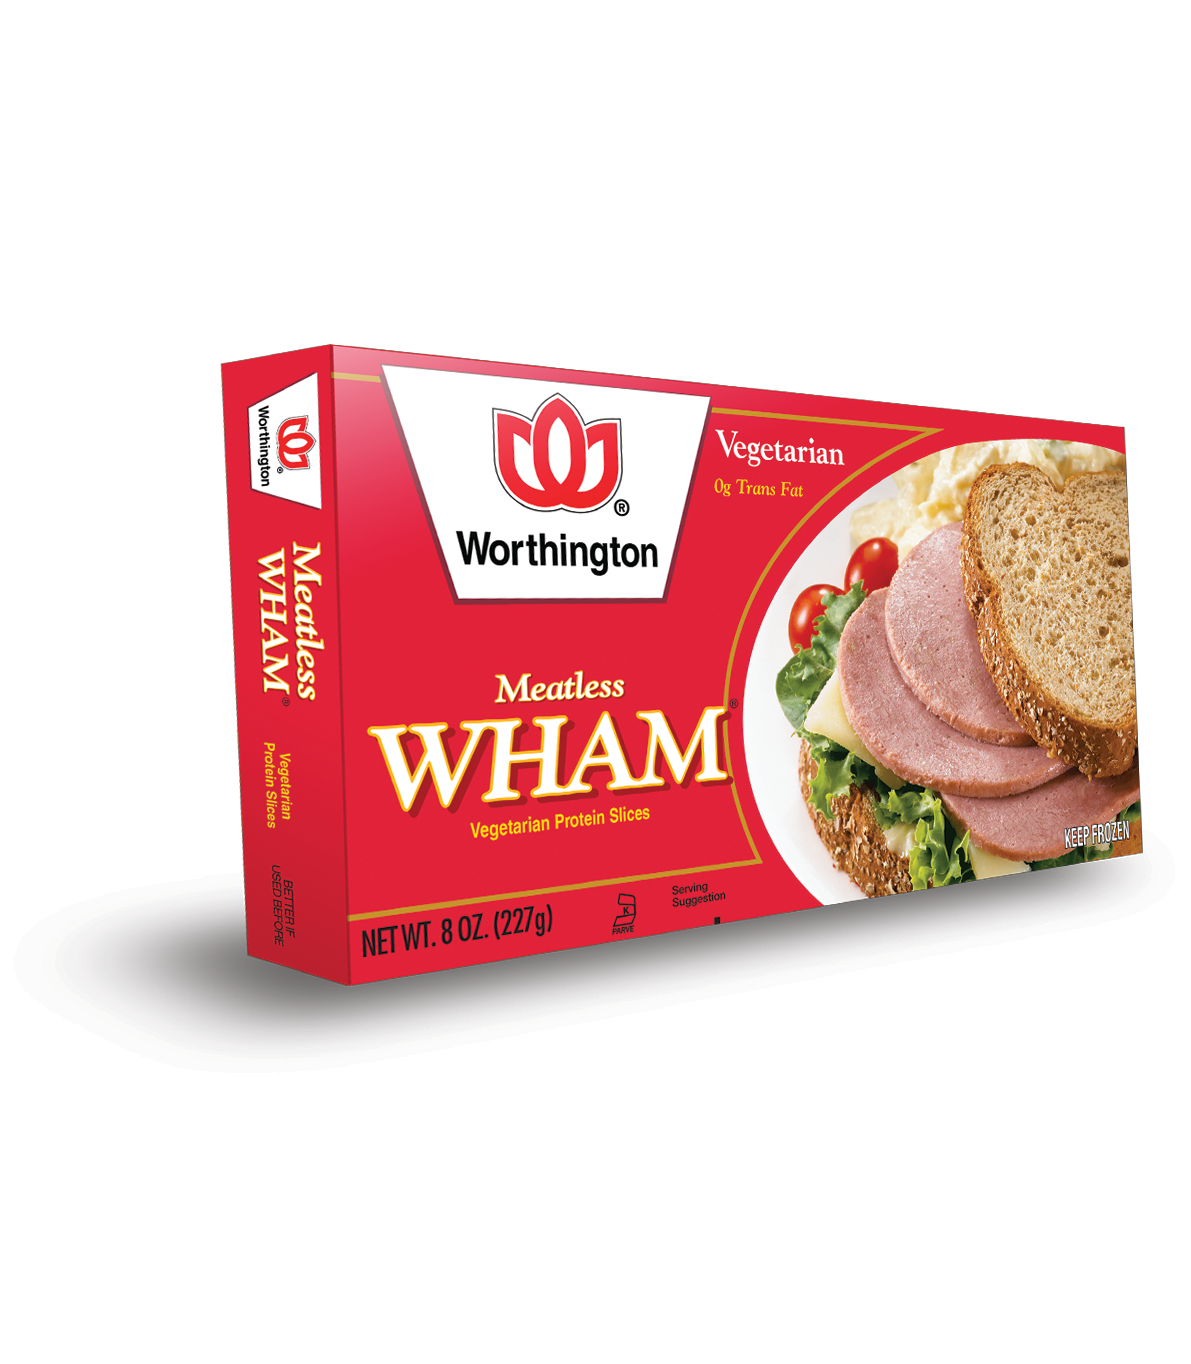 Wham heritage health food meatless wham slices forumfinder Image collections